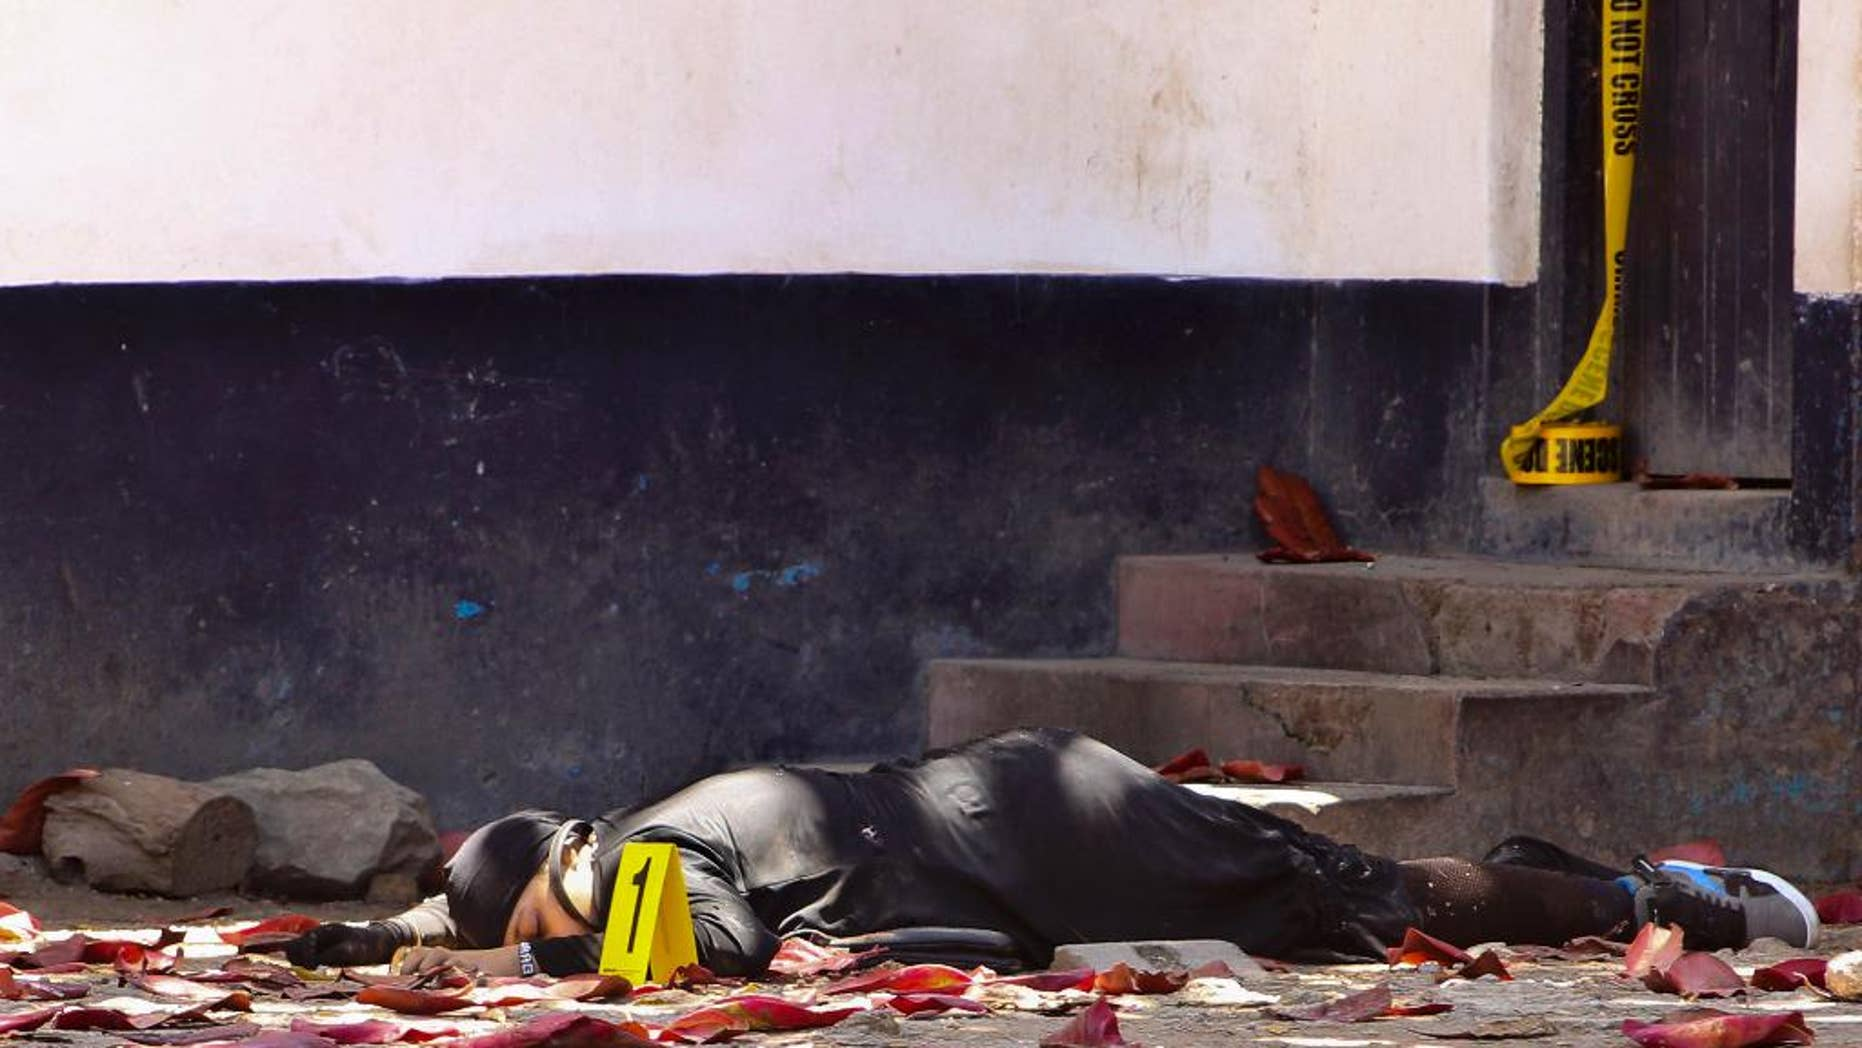 FILE- In this file photo dated Sunday Sept.11, 2016, one of the bodies of three women who were shot dead by police, outside the central police station in the coastal city of Mombasa, Kenya. Human rights activists with the Muslims for Human Rights group, on Friday Sept. 23, 2016, accused Kenyan police of executing three women who allegedly attacked a police station this month after pledging allegiance to the Islamic State group. (AP Photo / FILE)